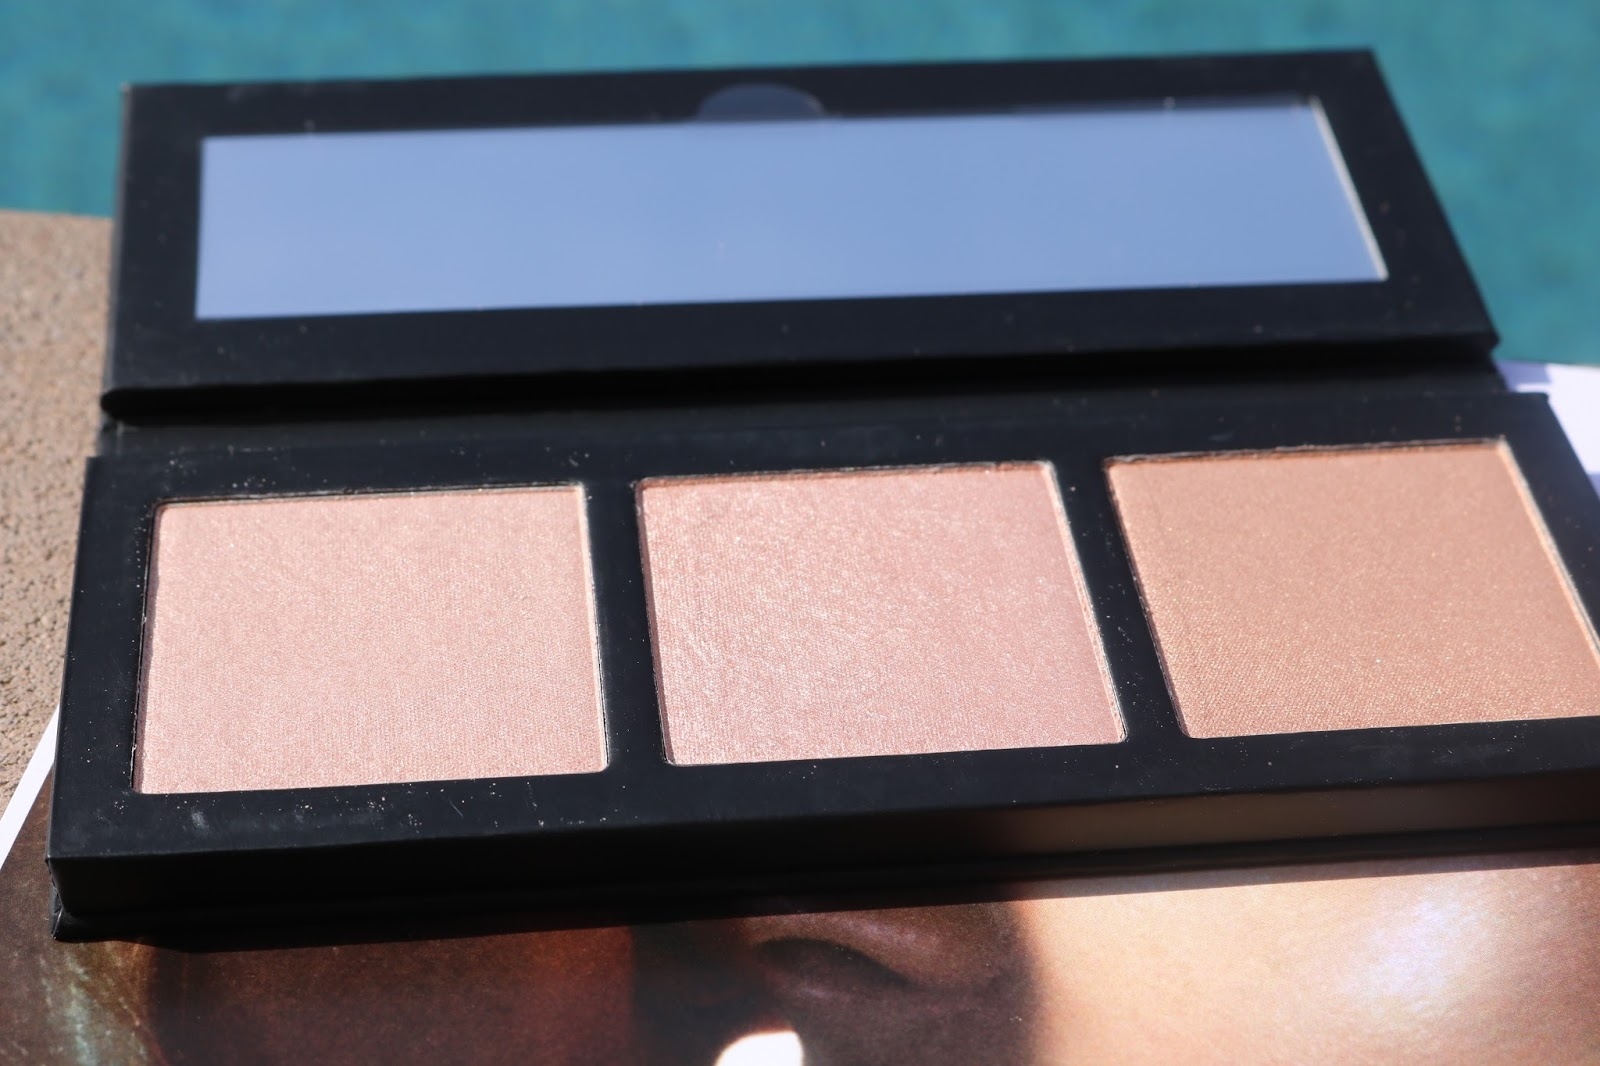 MAC Hyper Real Glow Palettes in Flash + Awe